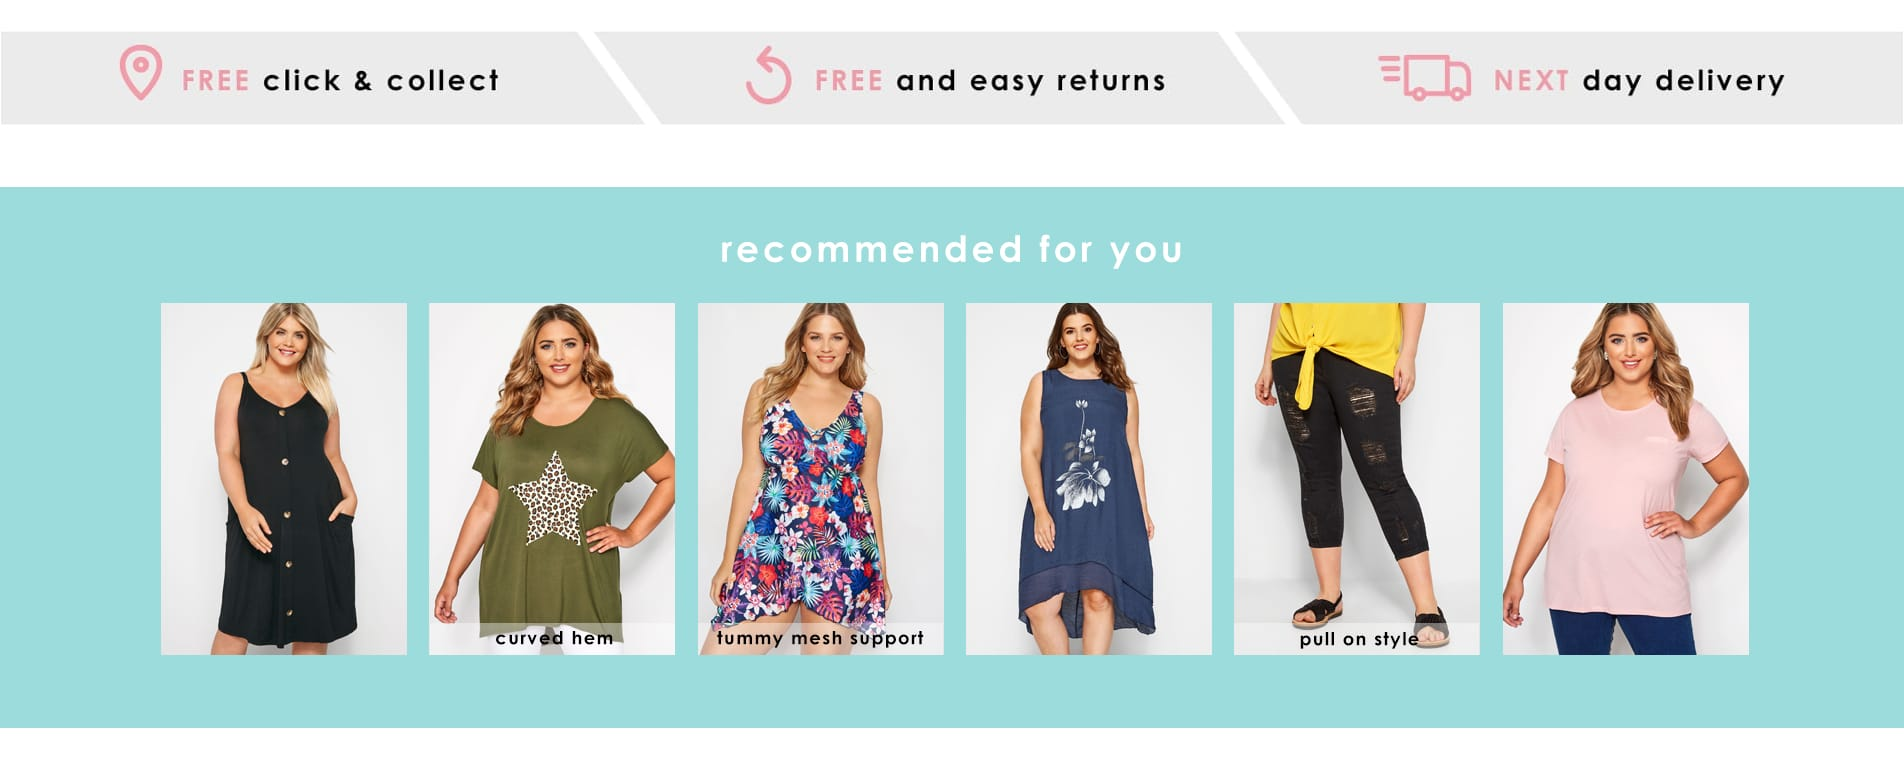 fe3156841888c9 Plus Size Clothing | Women's Curve & Plus Size Fashion | Yours Clothing